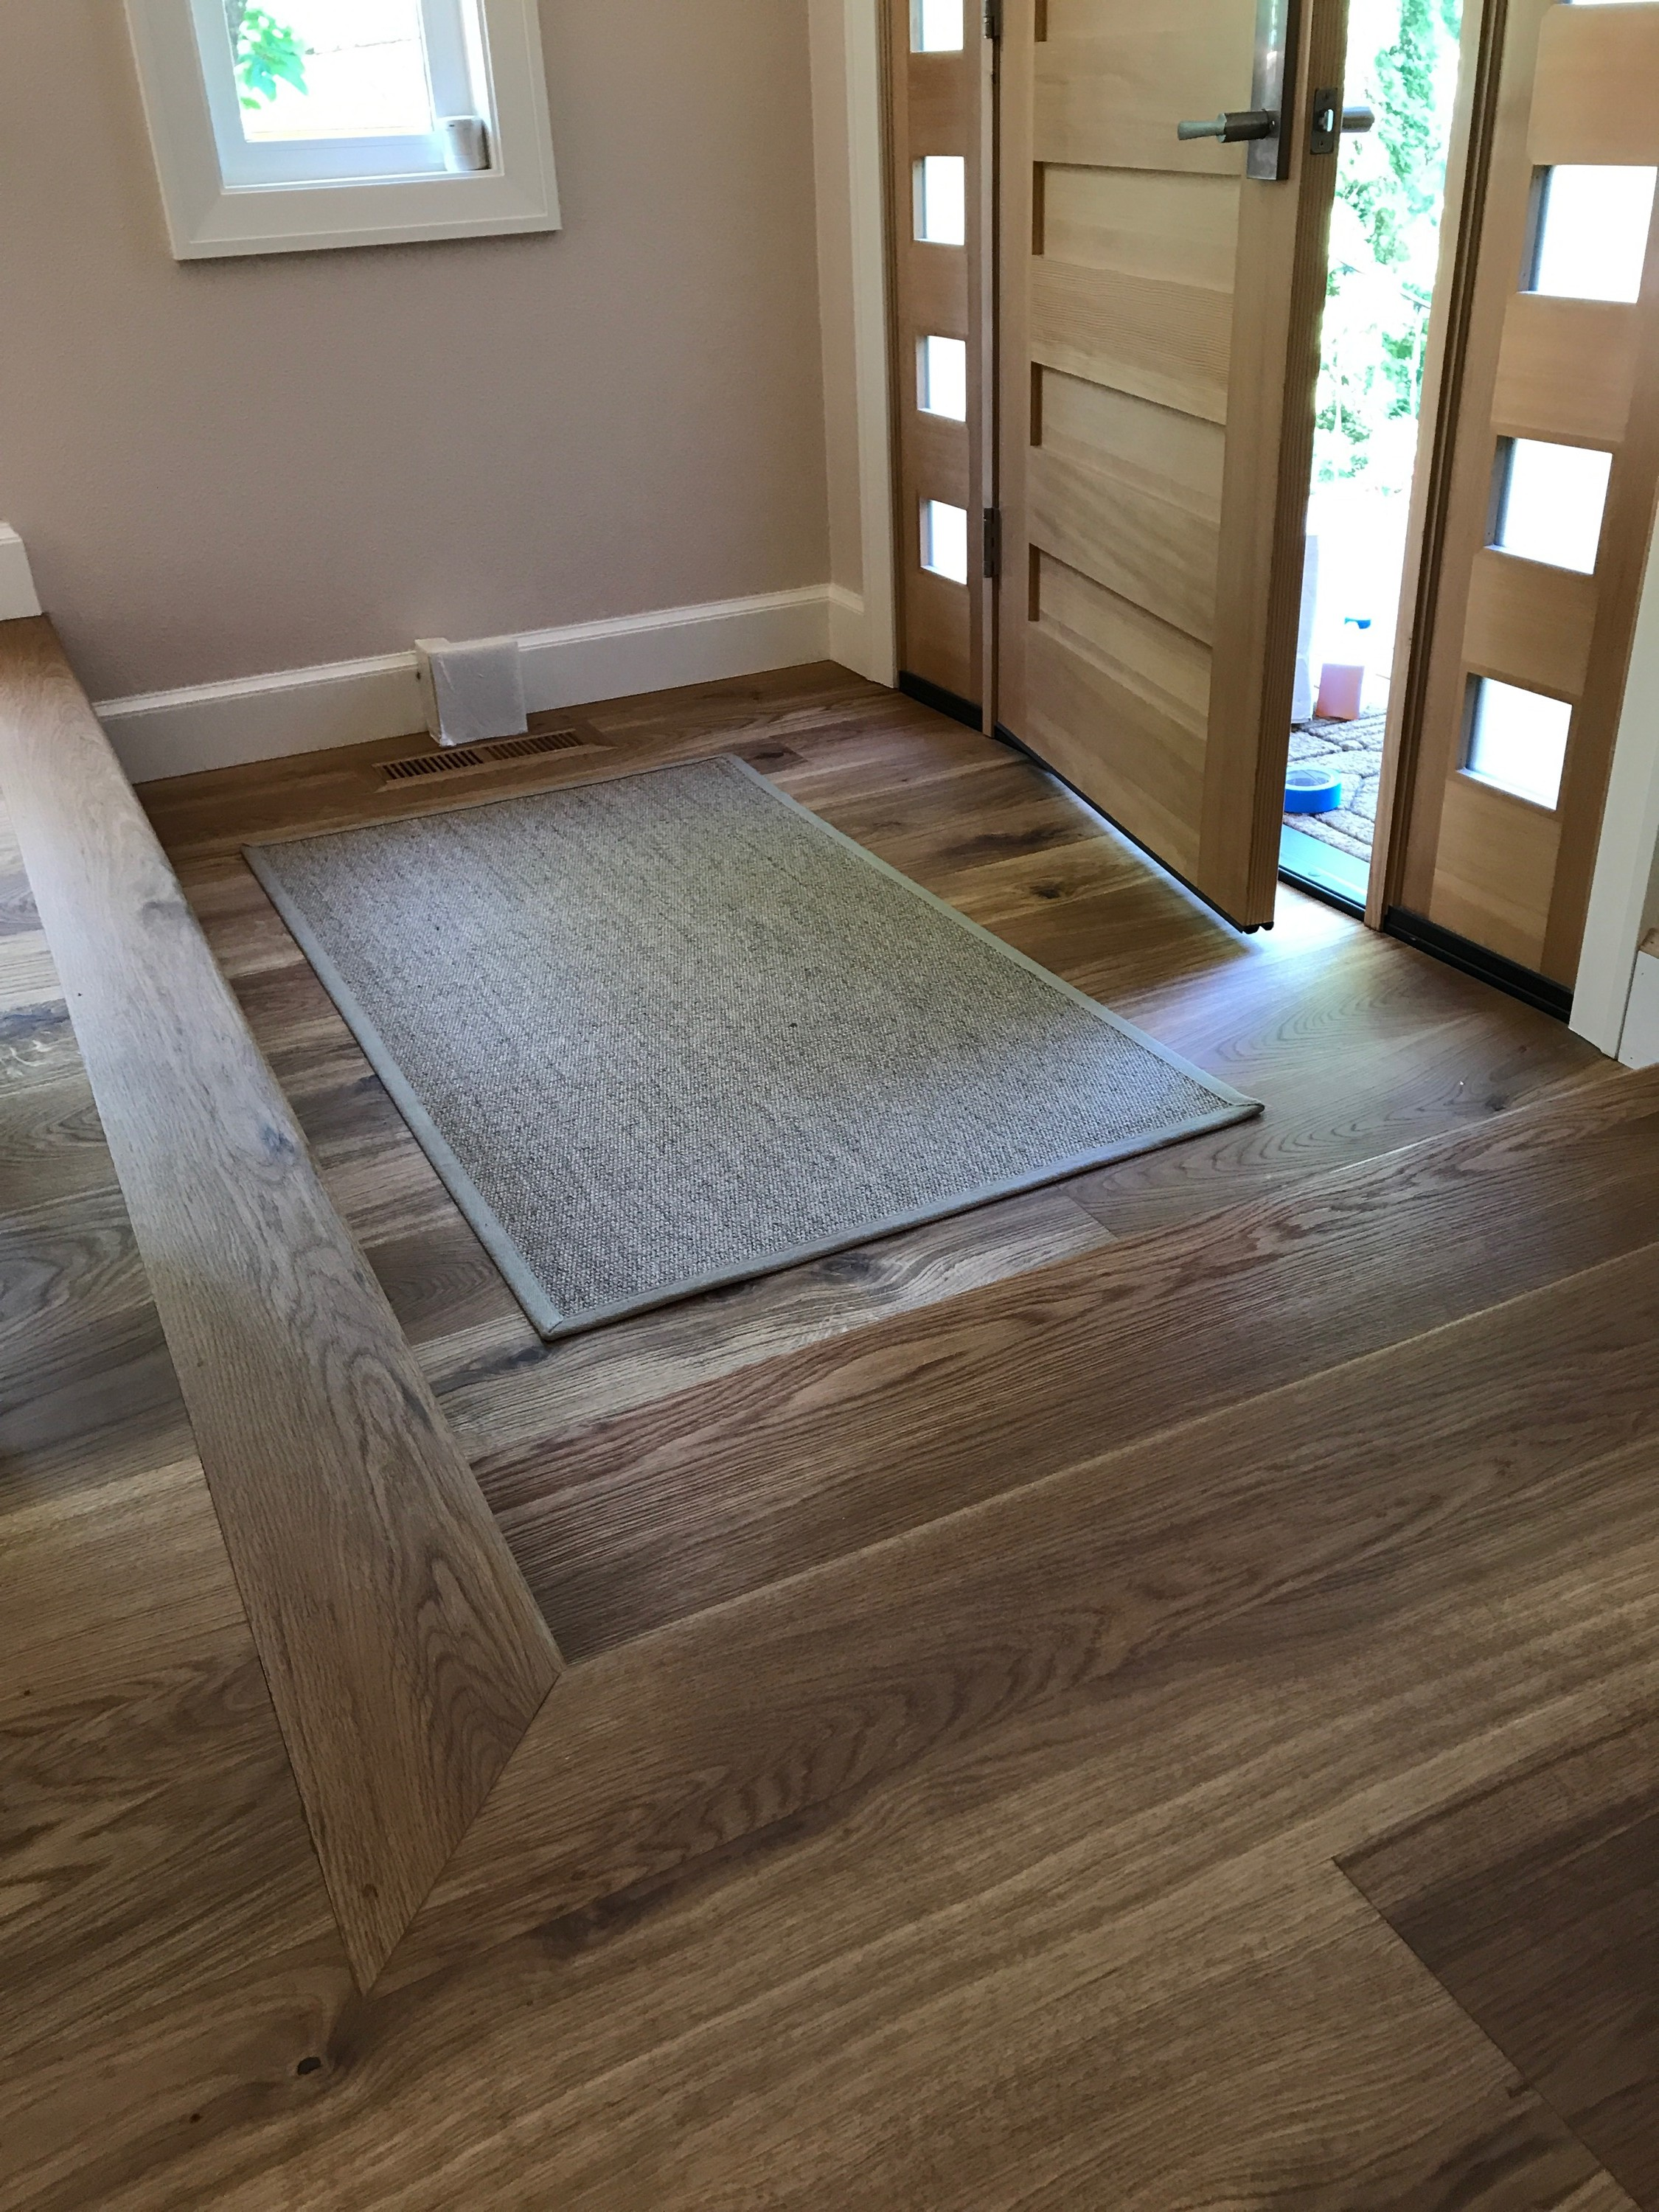 Domino Hardwood Floors Blog Domino Hardwood Floors Blog Hardwood